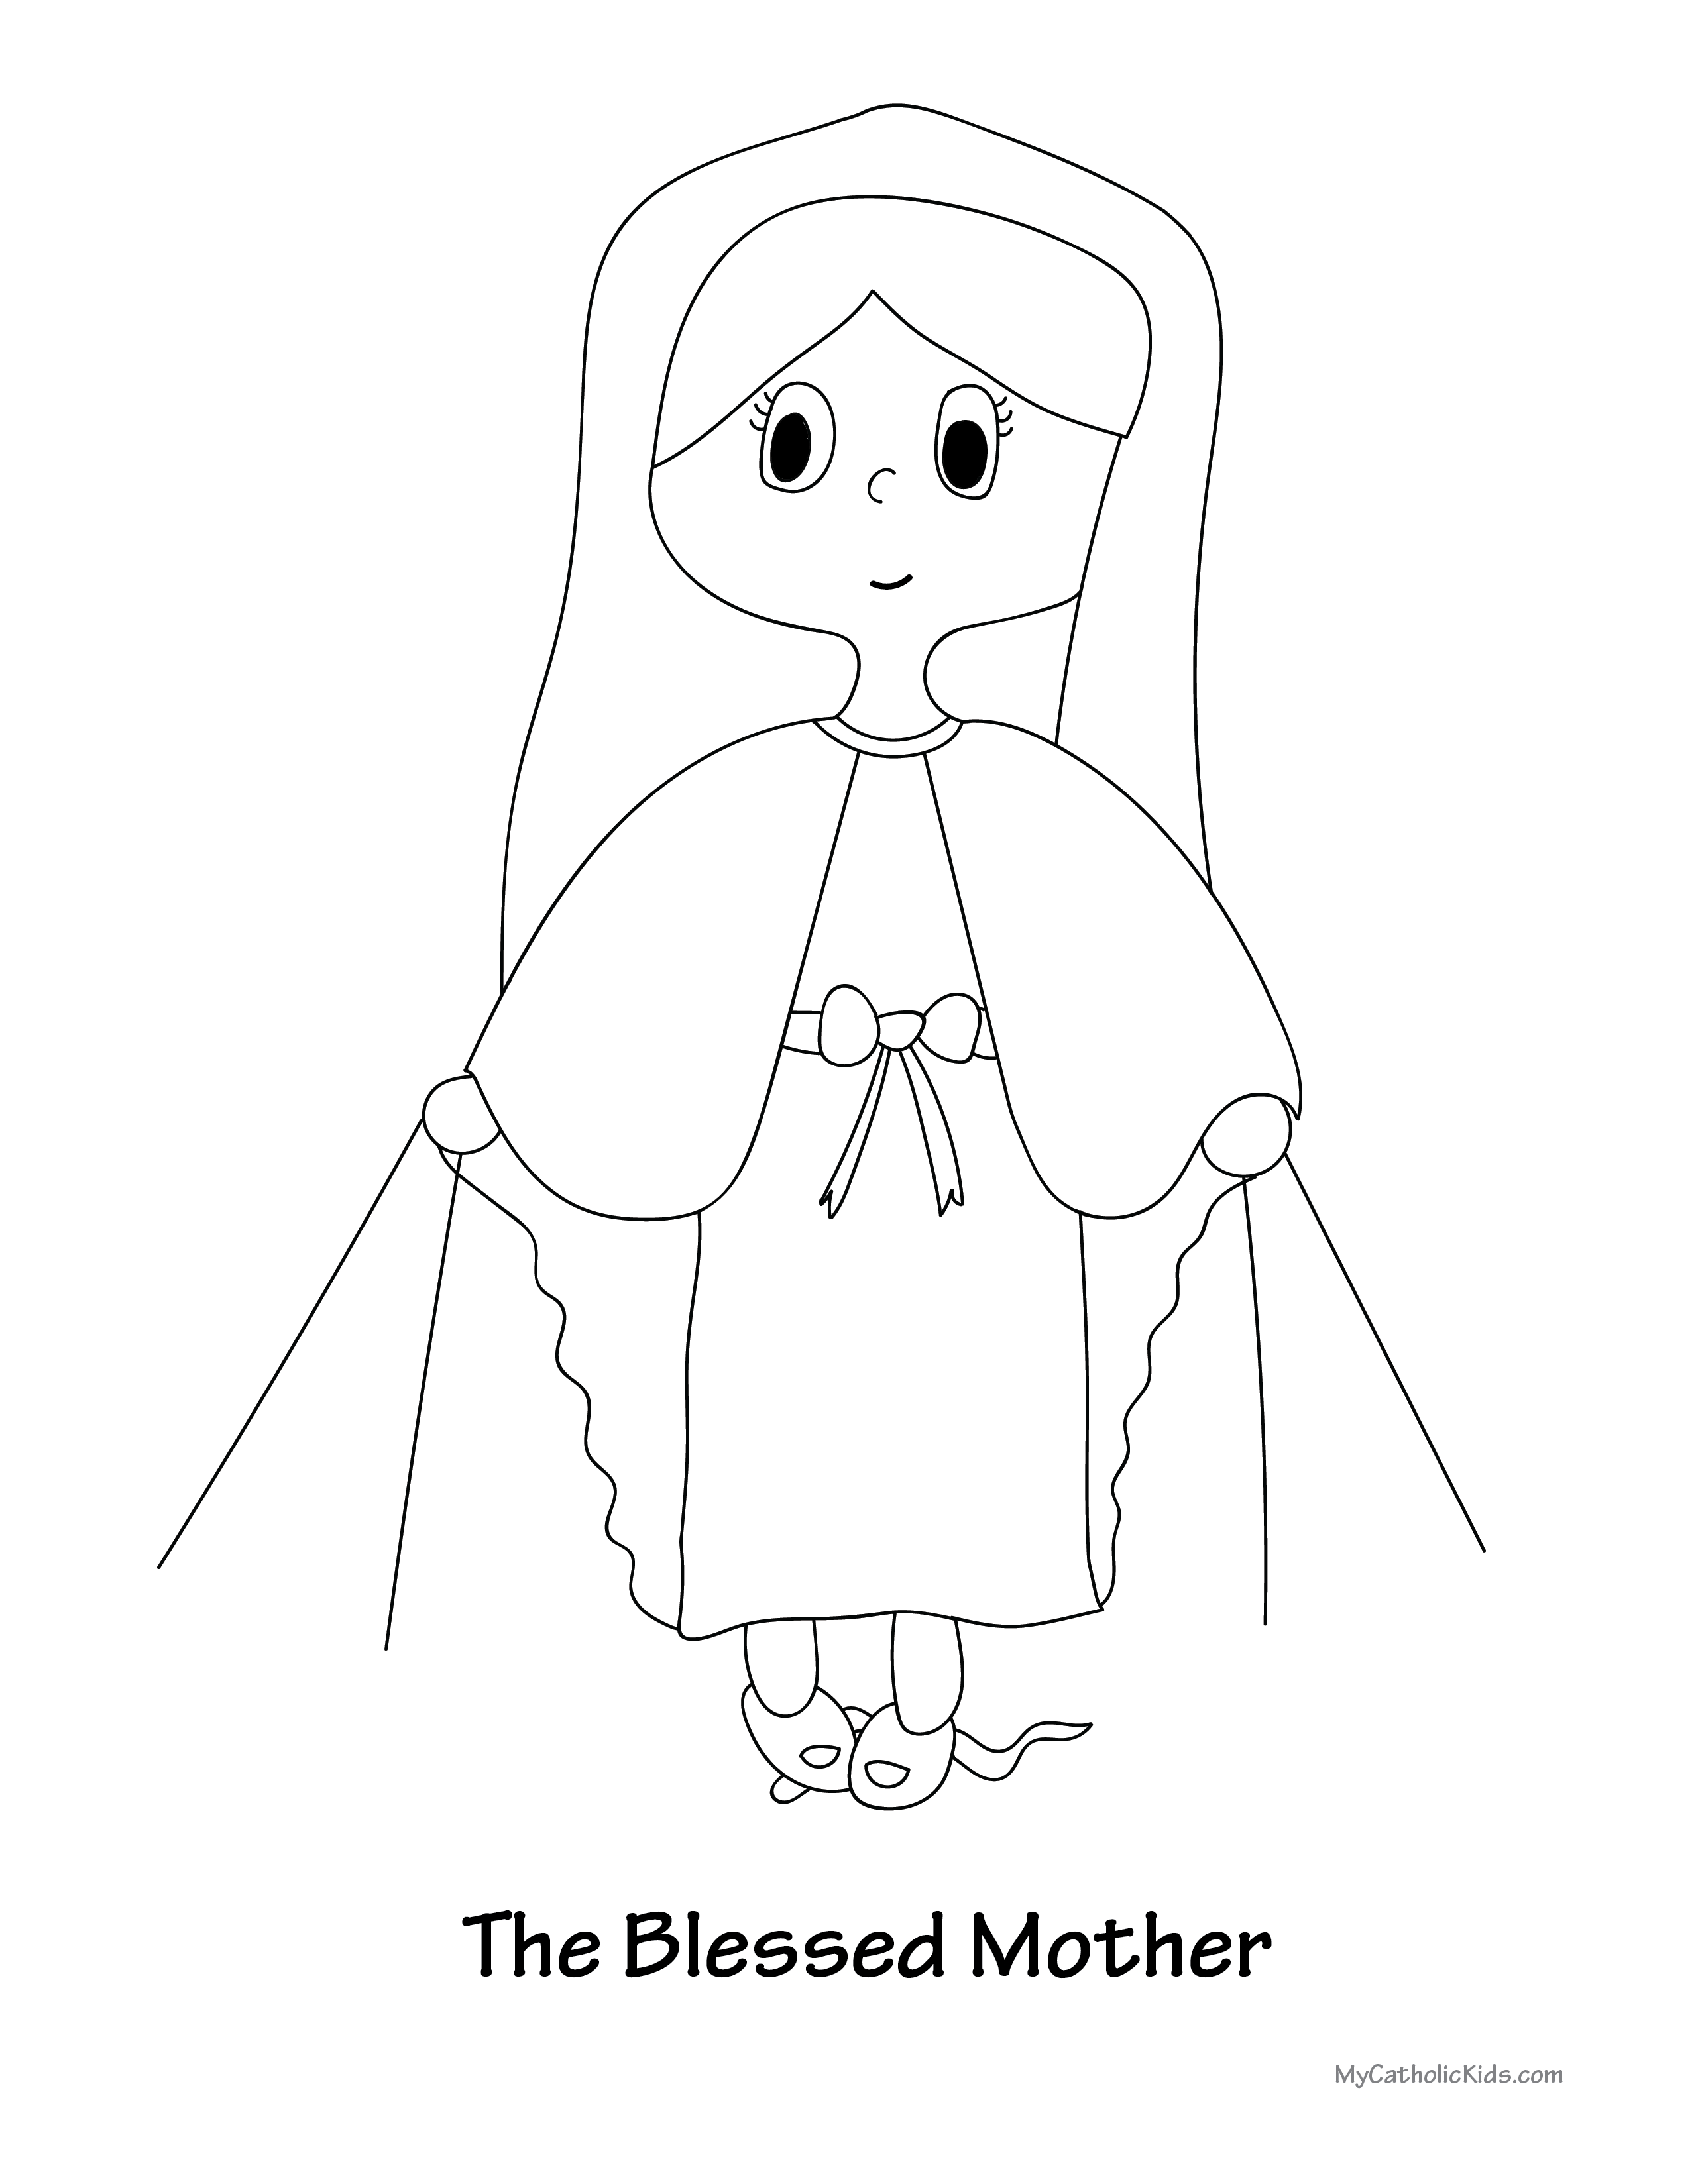 Blessed Mother coloring sheet